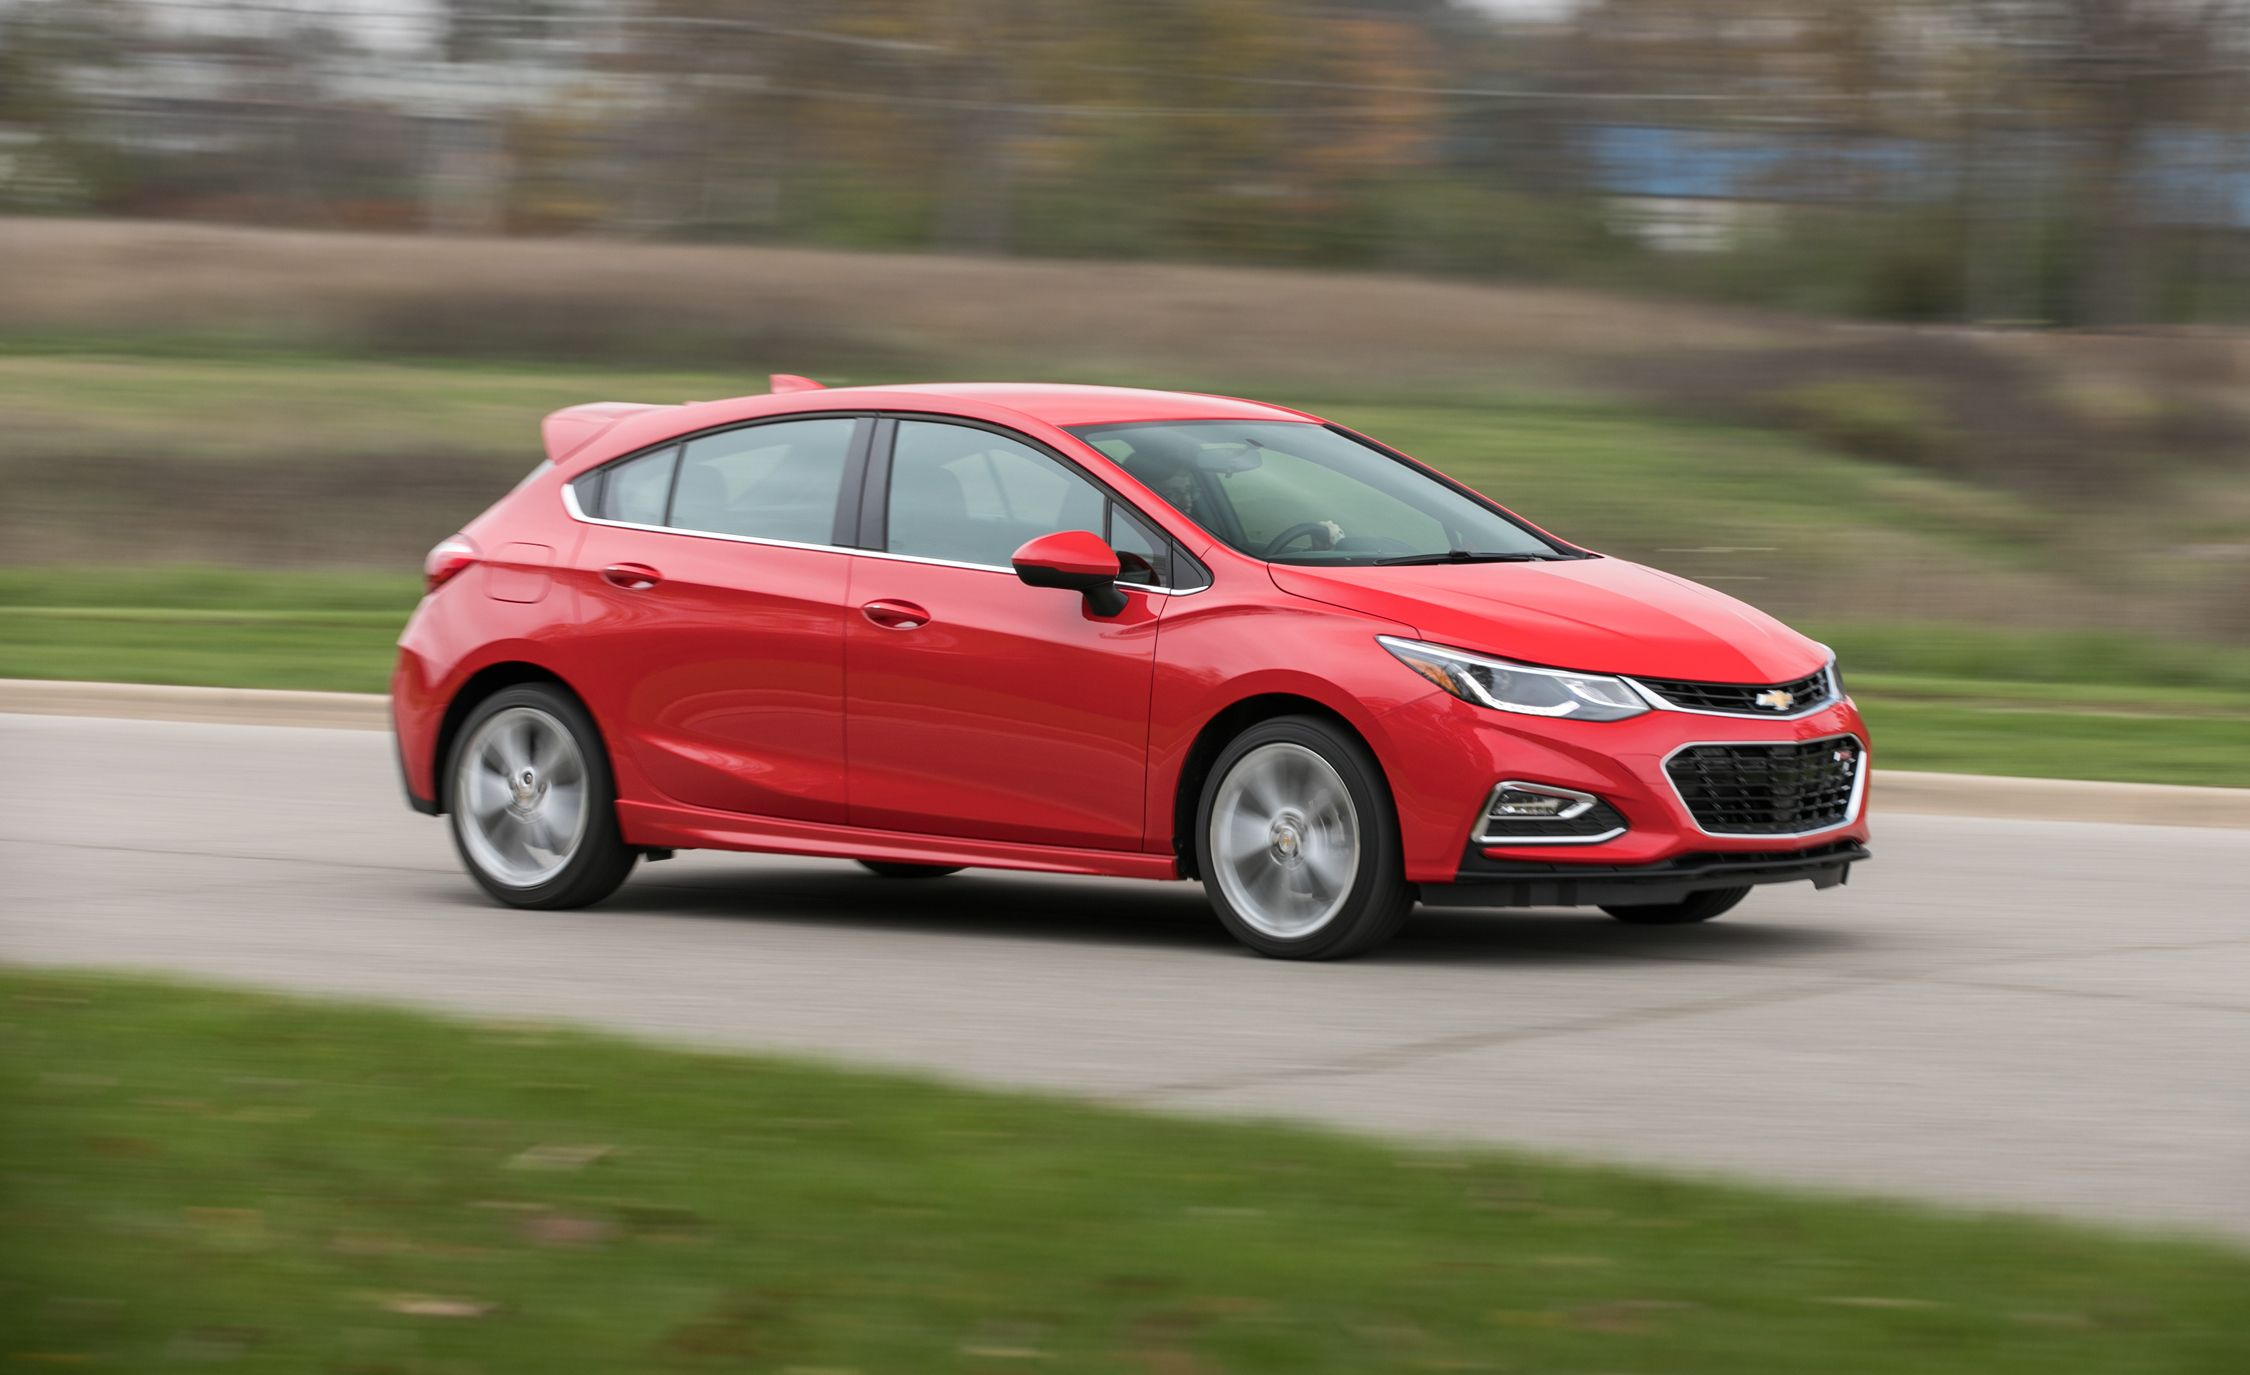 2018 Chevrolet Cruze | In-Depth Model Review | Car and Driver